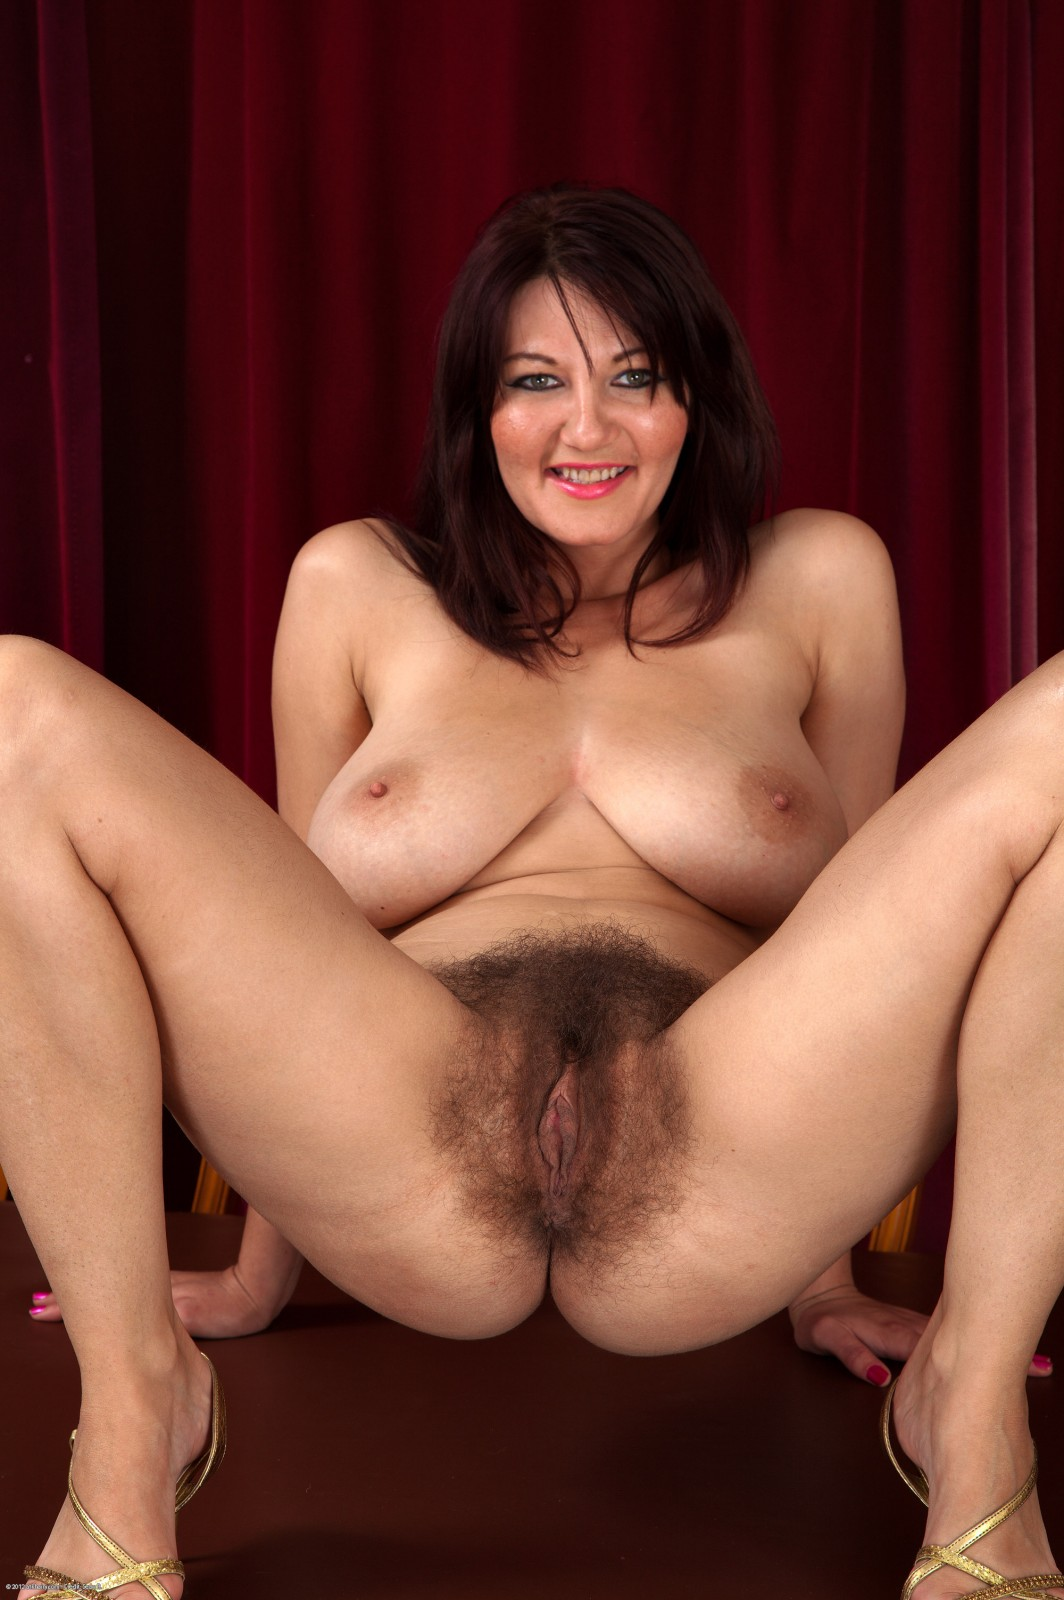 porn hairy mature woman image